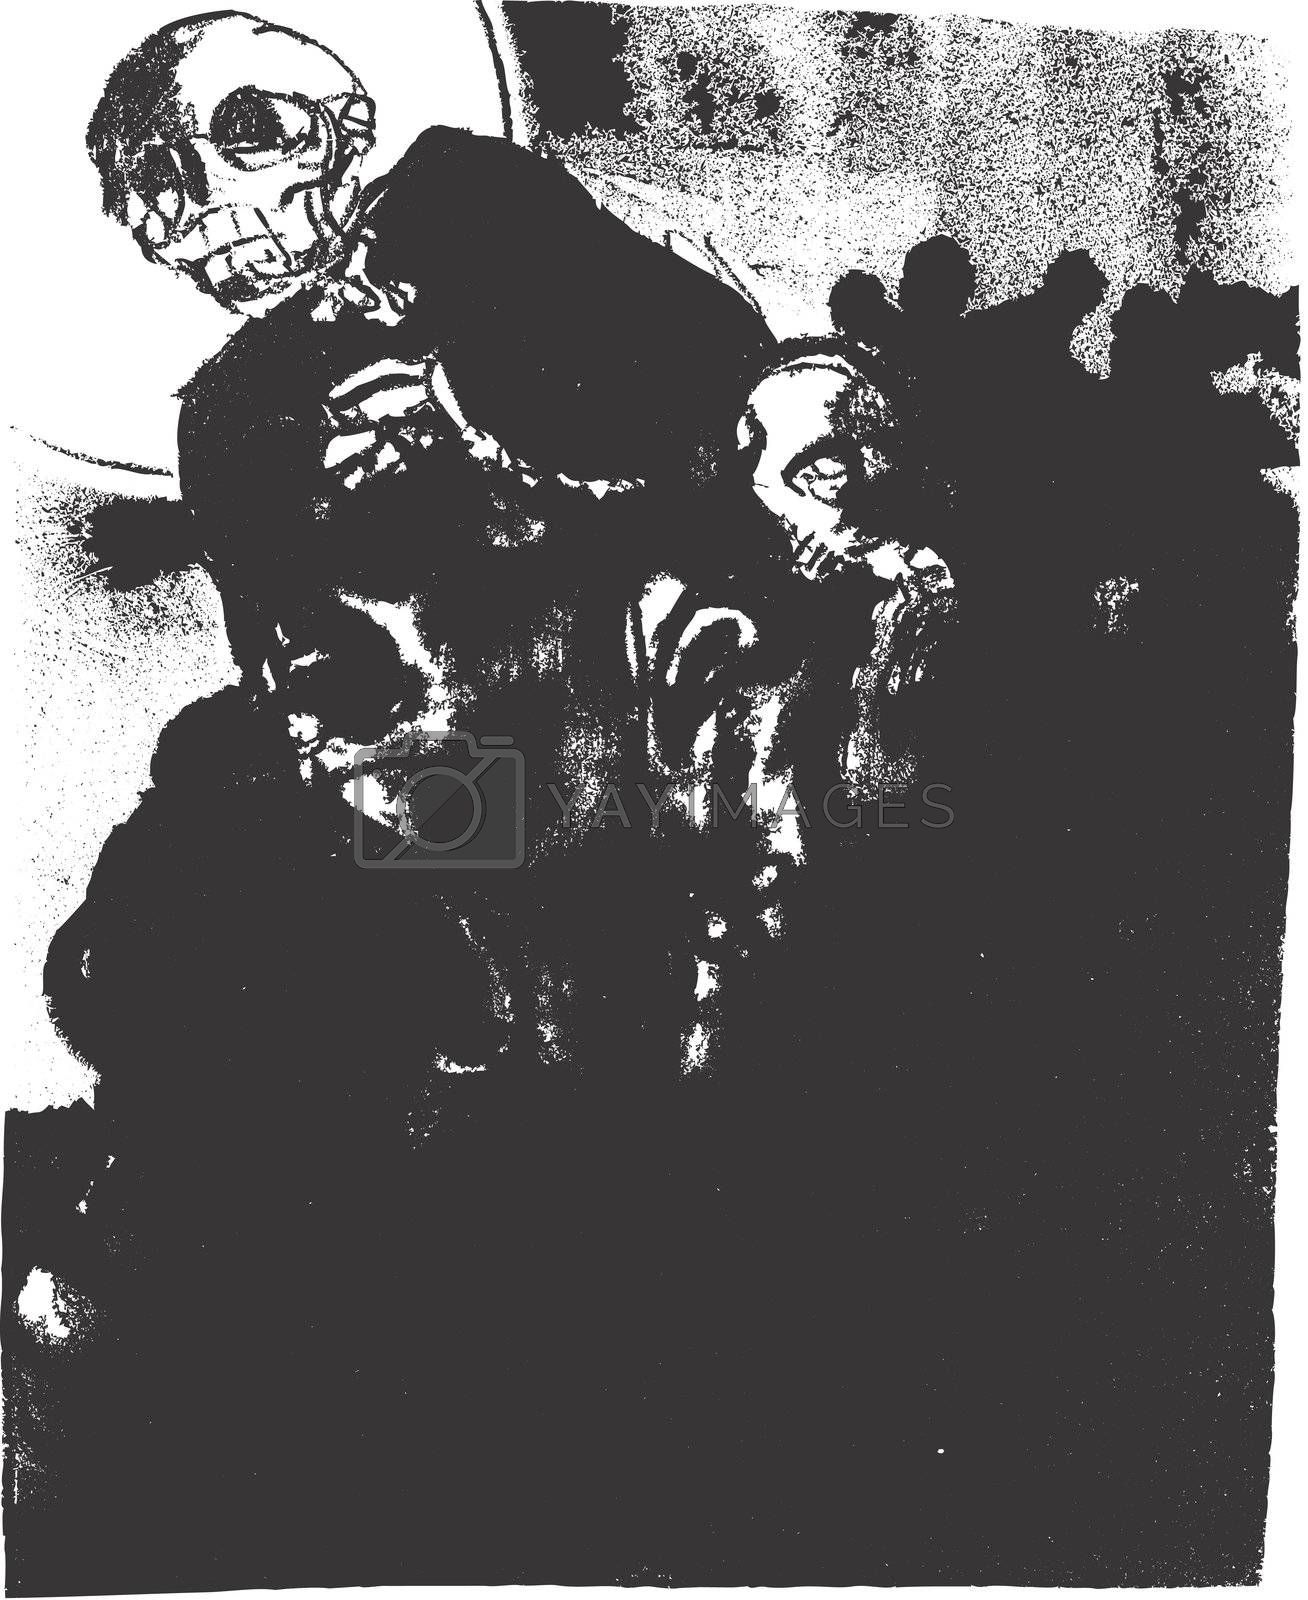 A lithograph image of the specter of death.